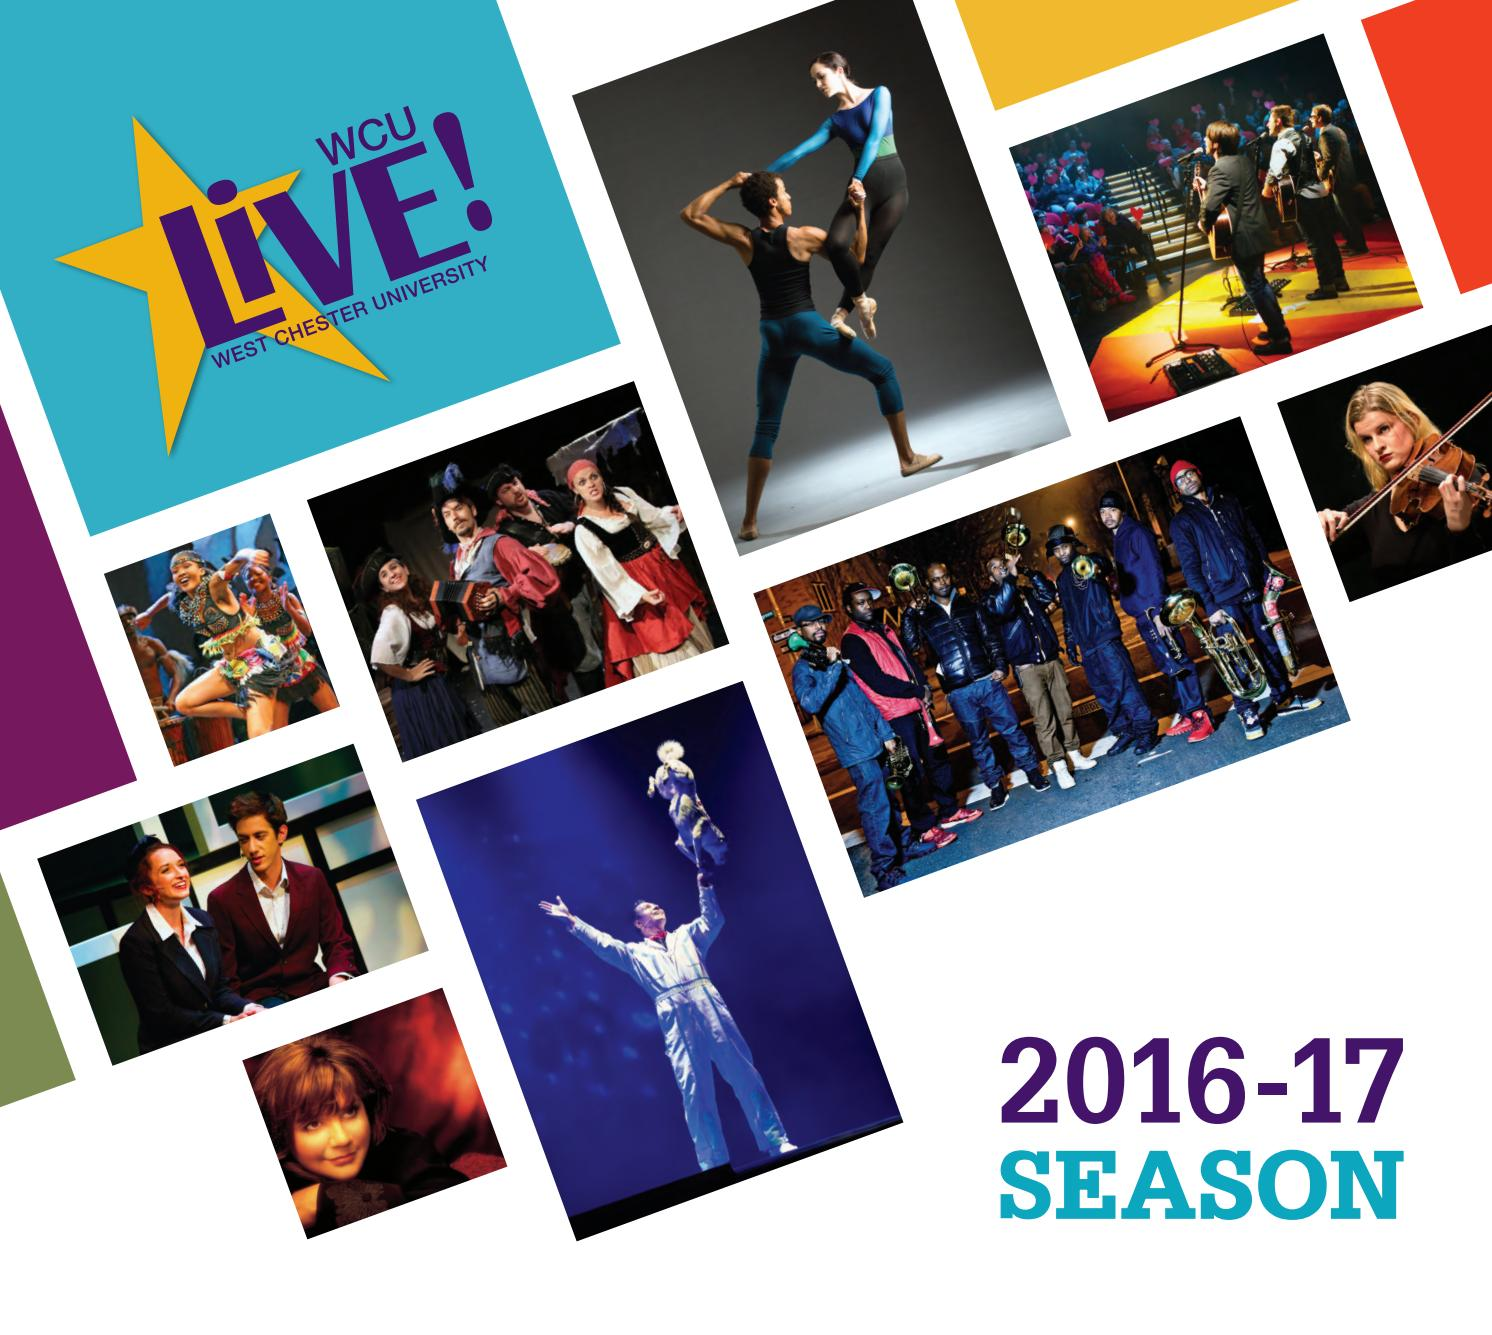 wcu live cultural events calendar by west chester 2016 2017 cultural events calendar by west chester university issuu